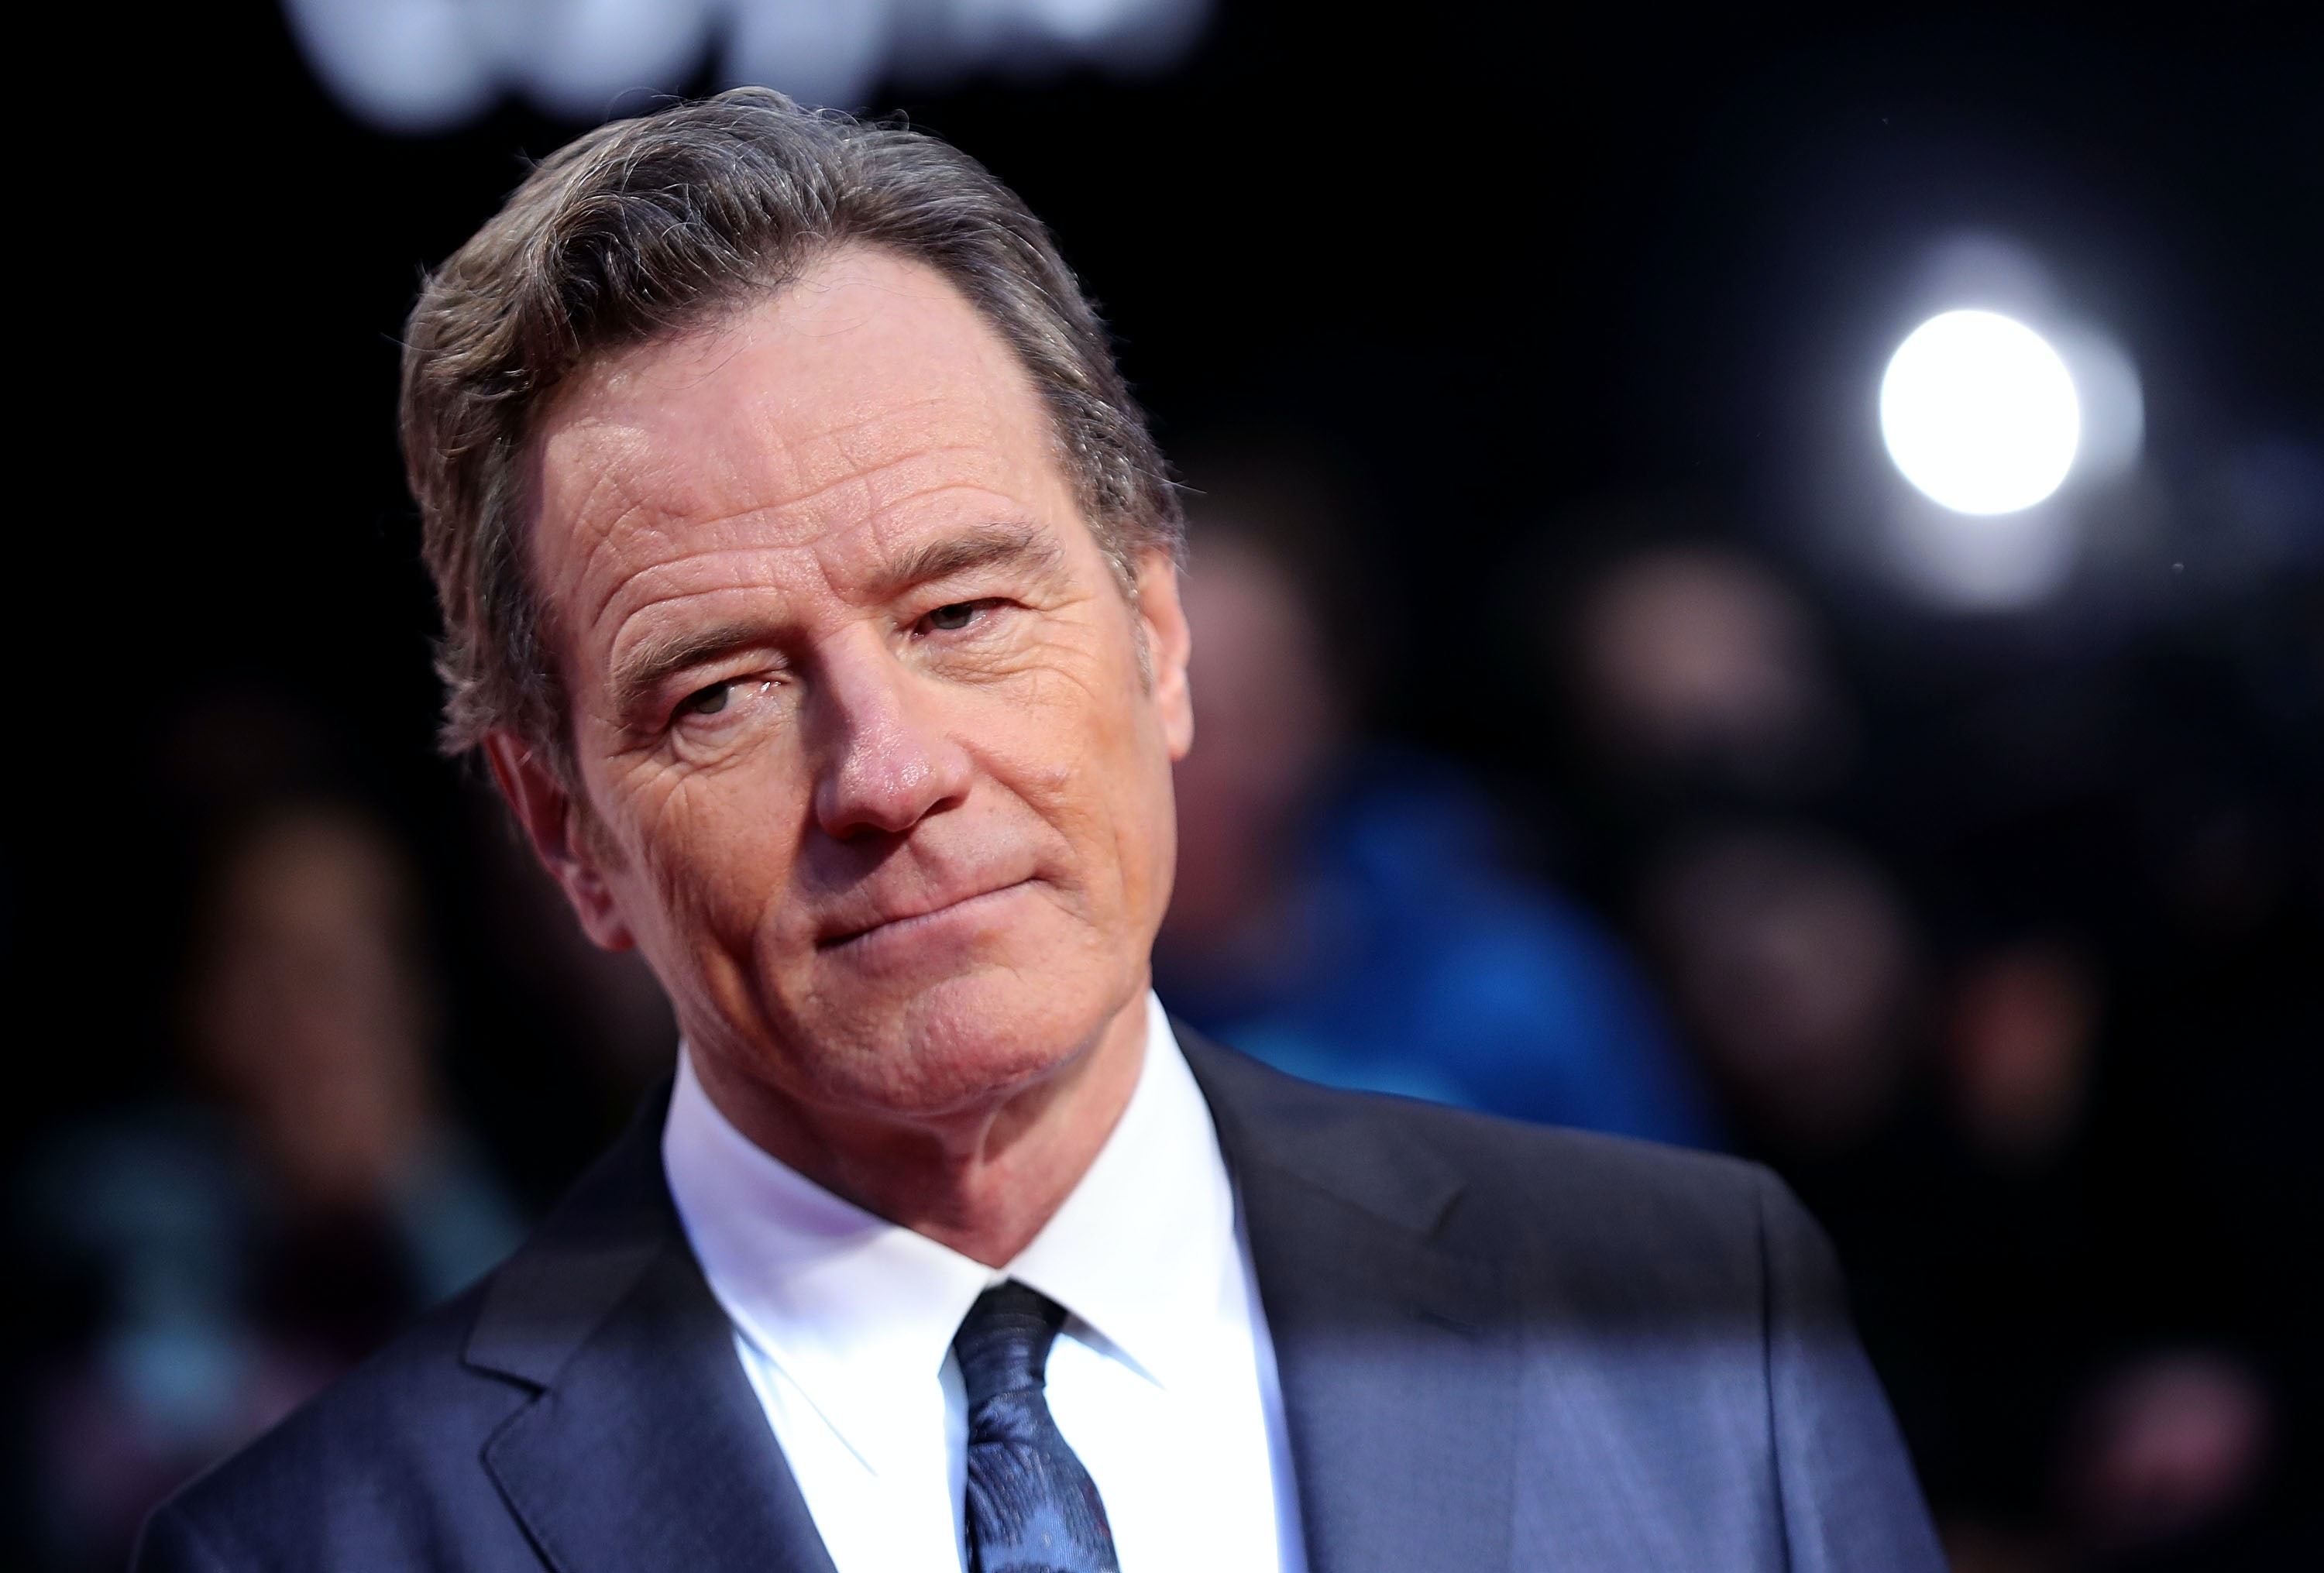 Bryan Cranston has described his brush with the late killer Charlie Manson